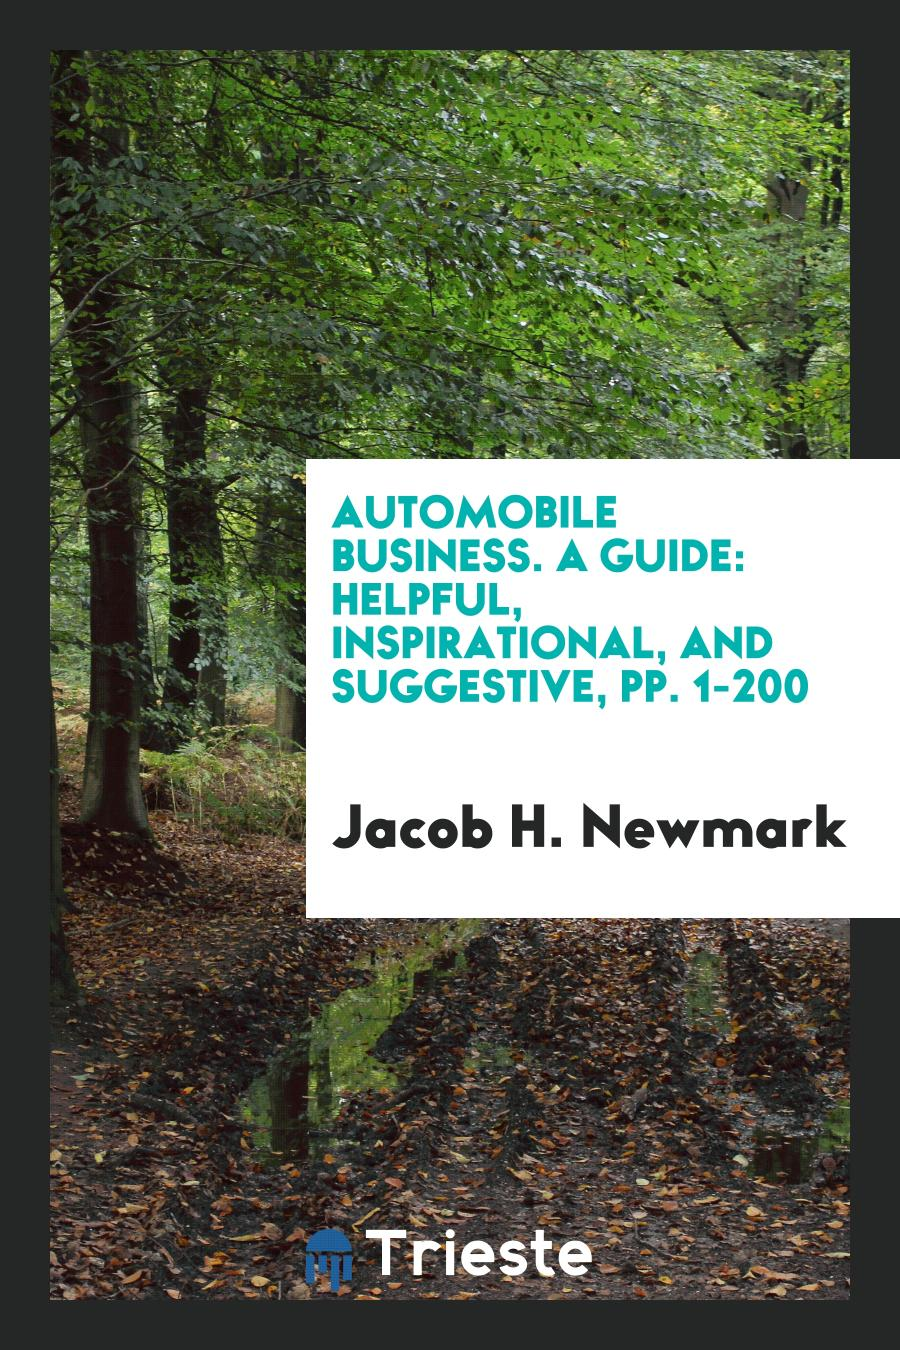 Automobile Business. A Guide: Helpful, Inspirational, and Suggestive, pp. 1-200